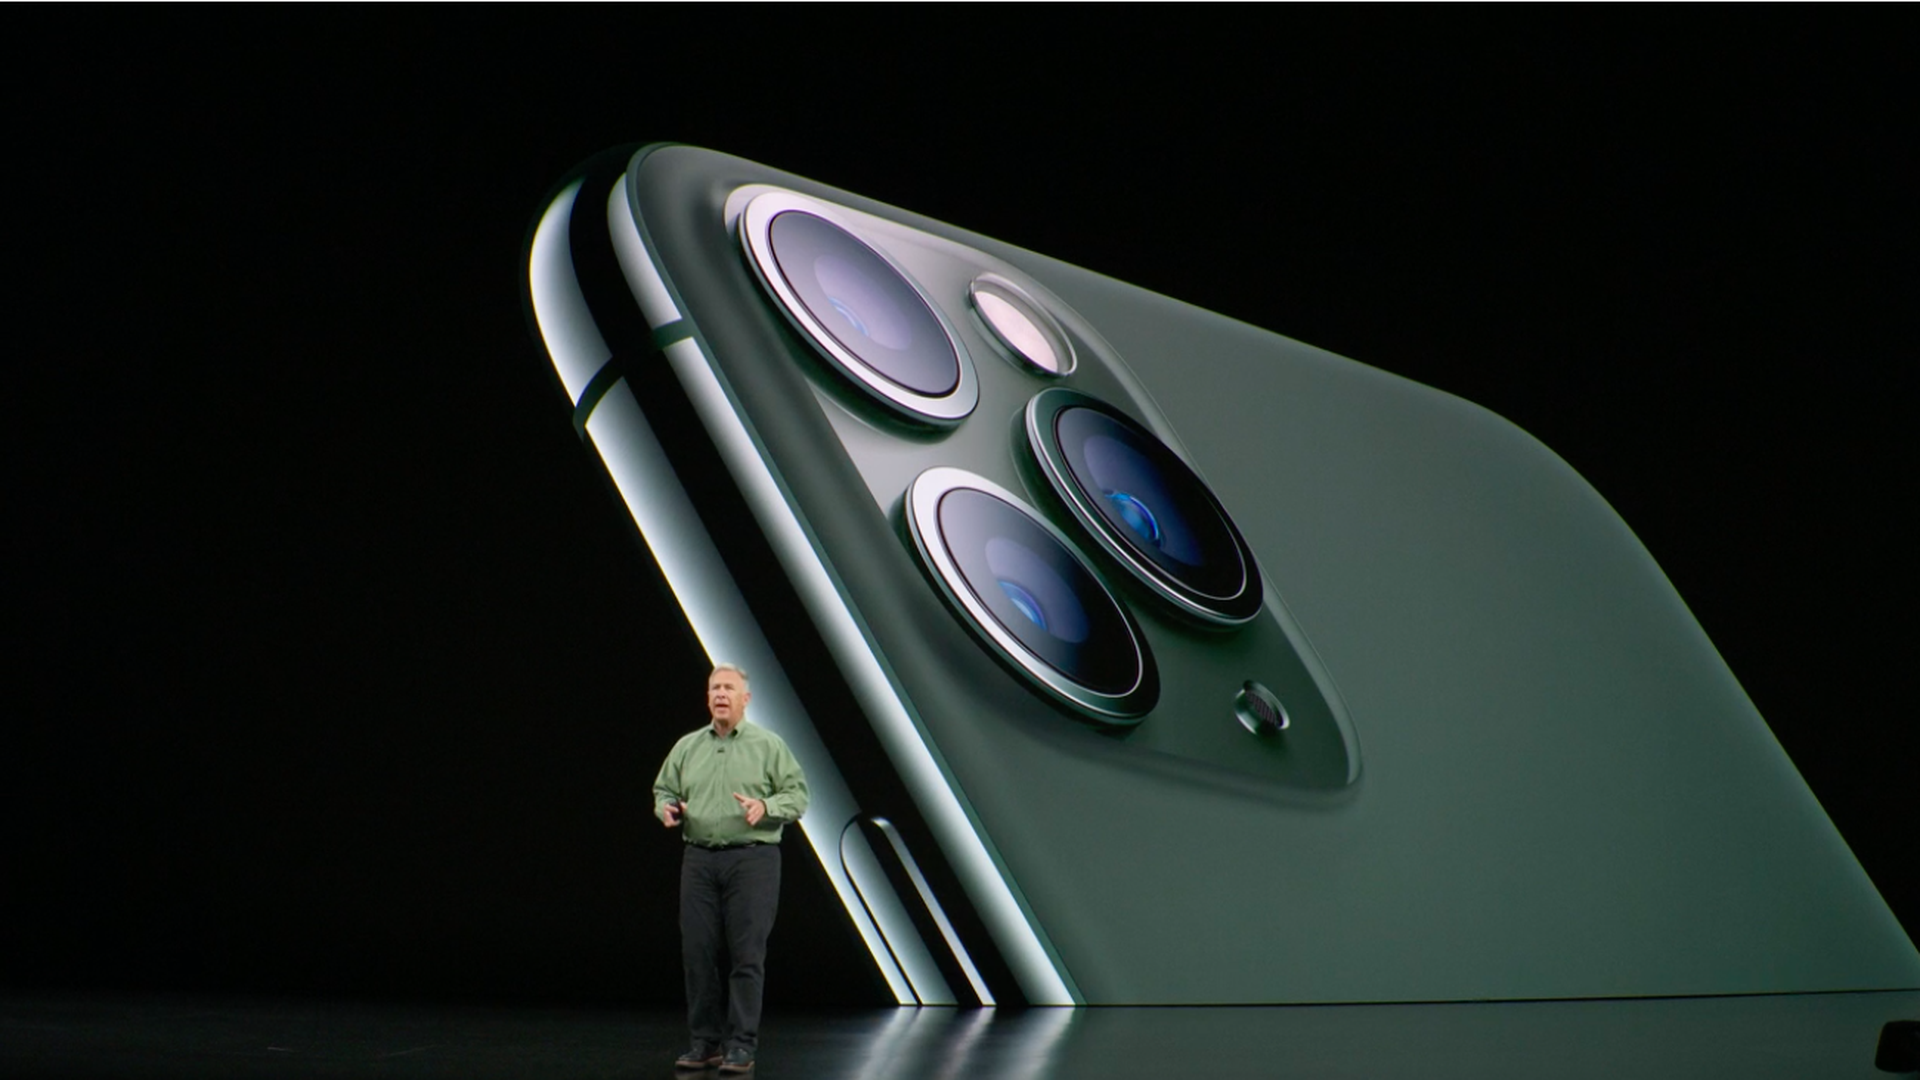 Screenshot of Apple Senior VP Phil Schiller introducing iPhone 11 Pro